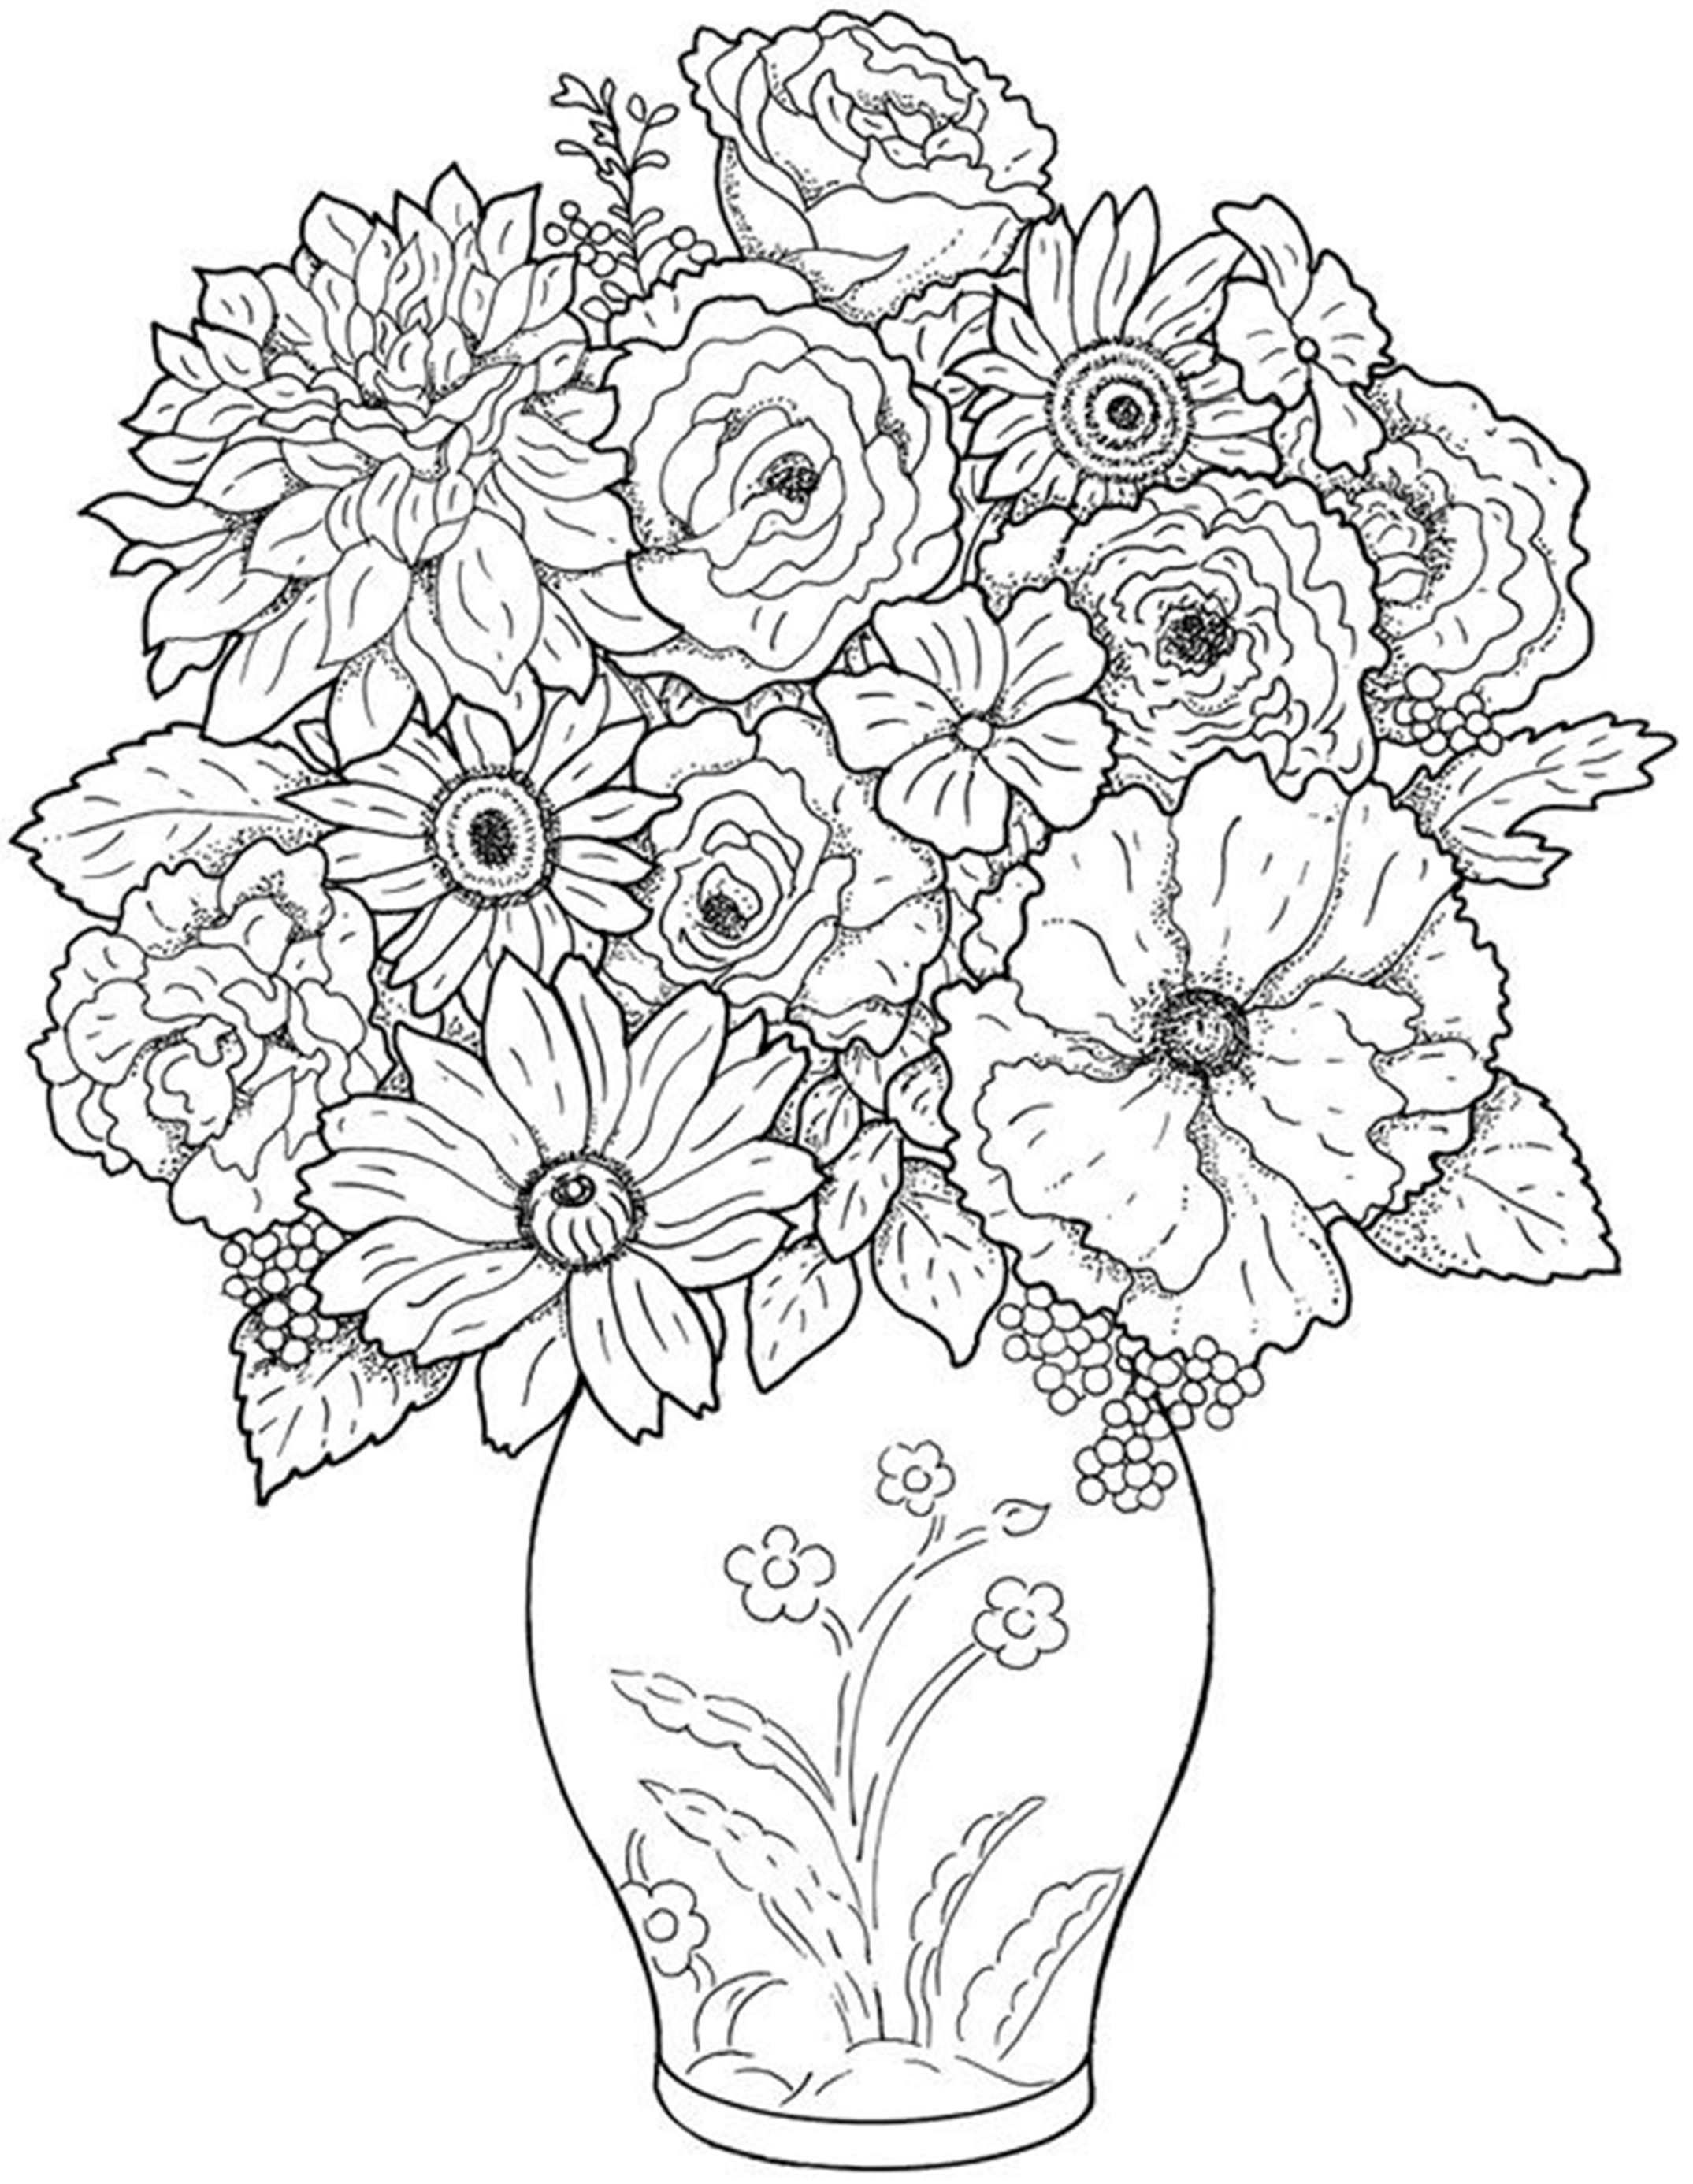 Coloring pages with flowers